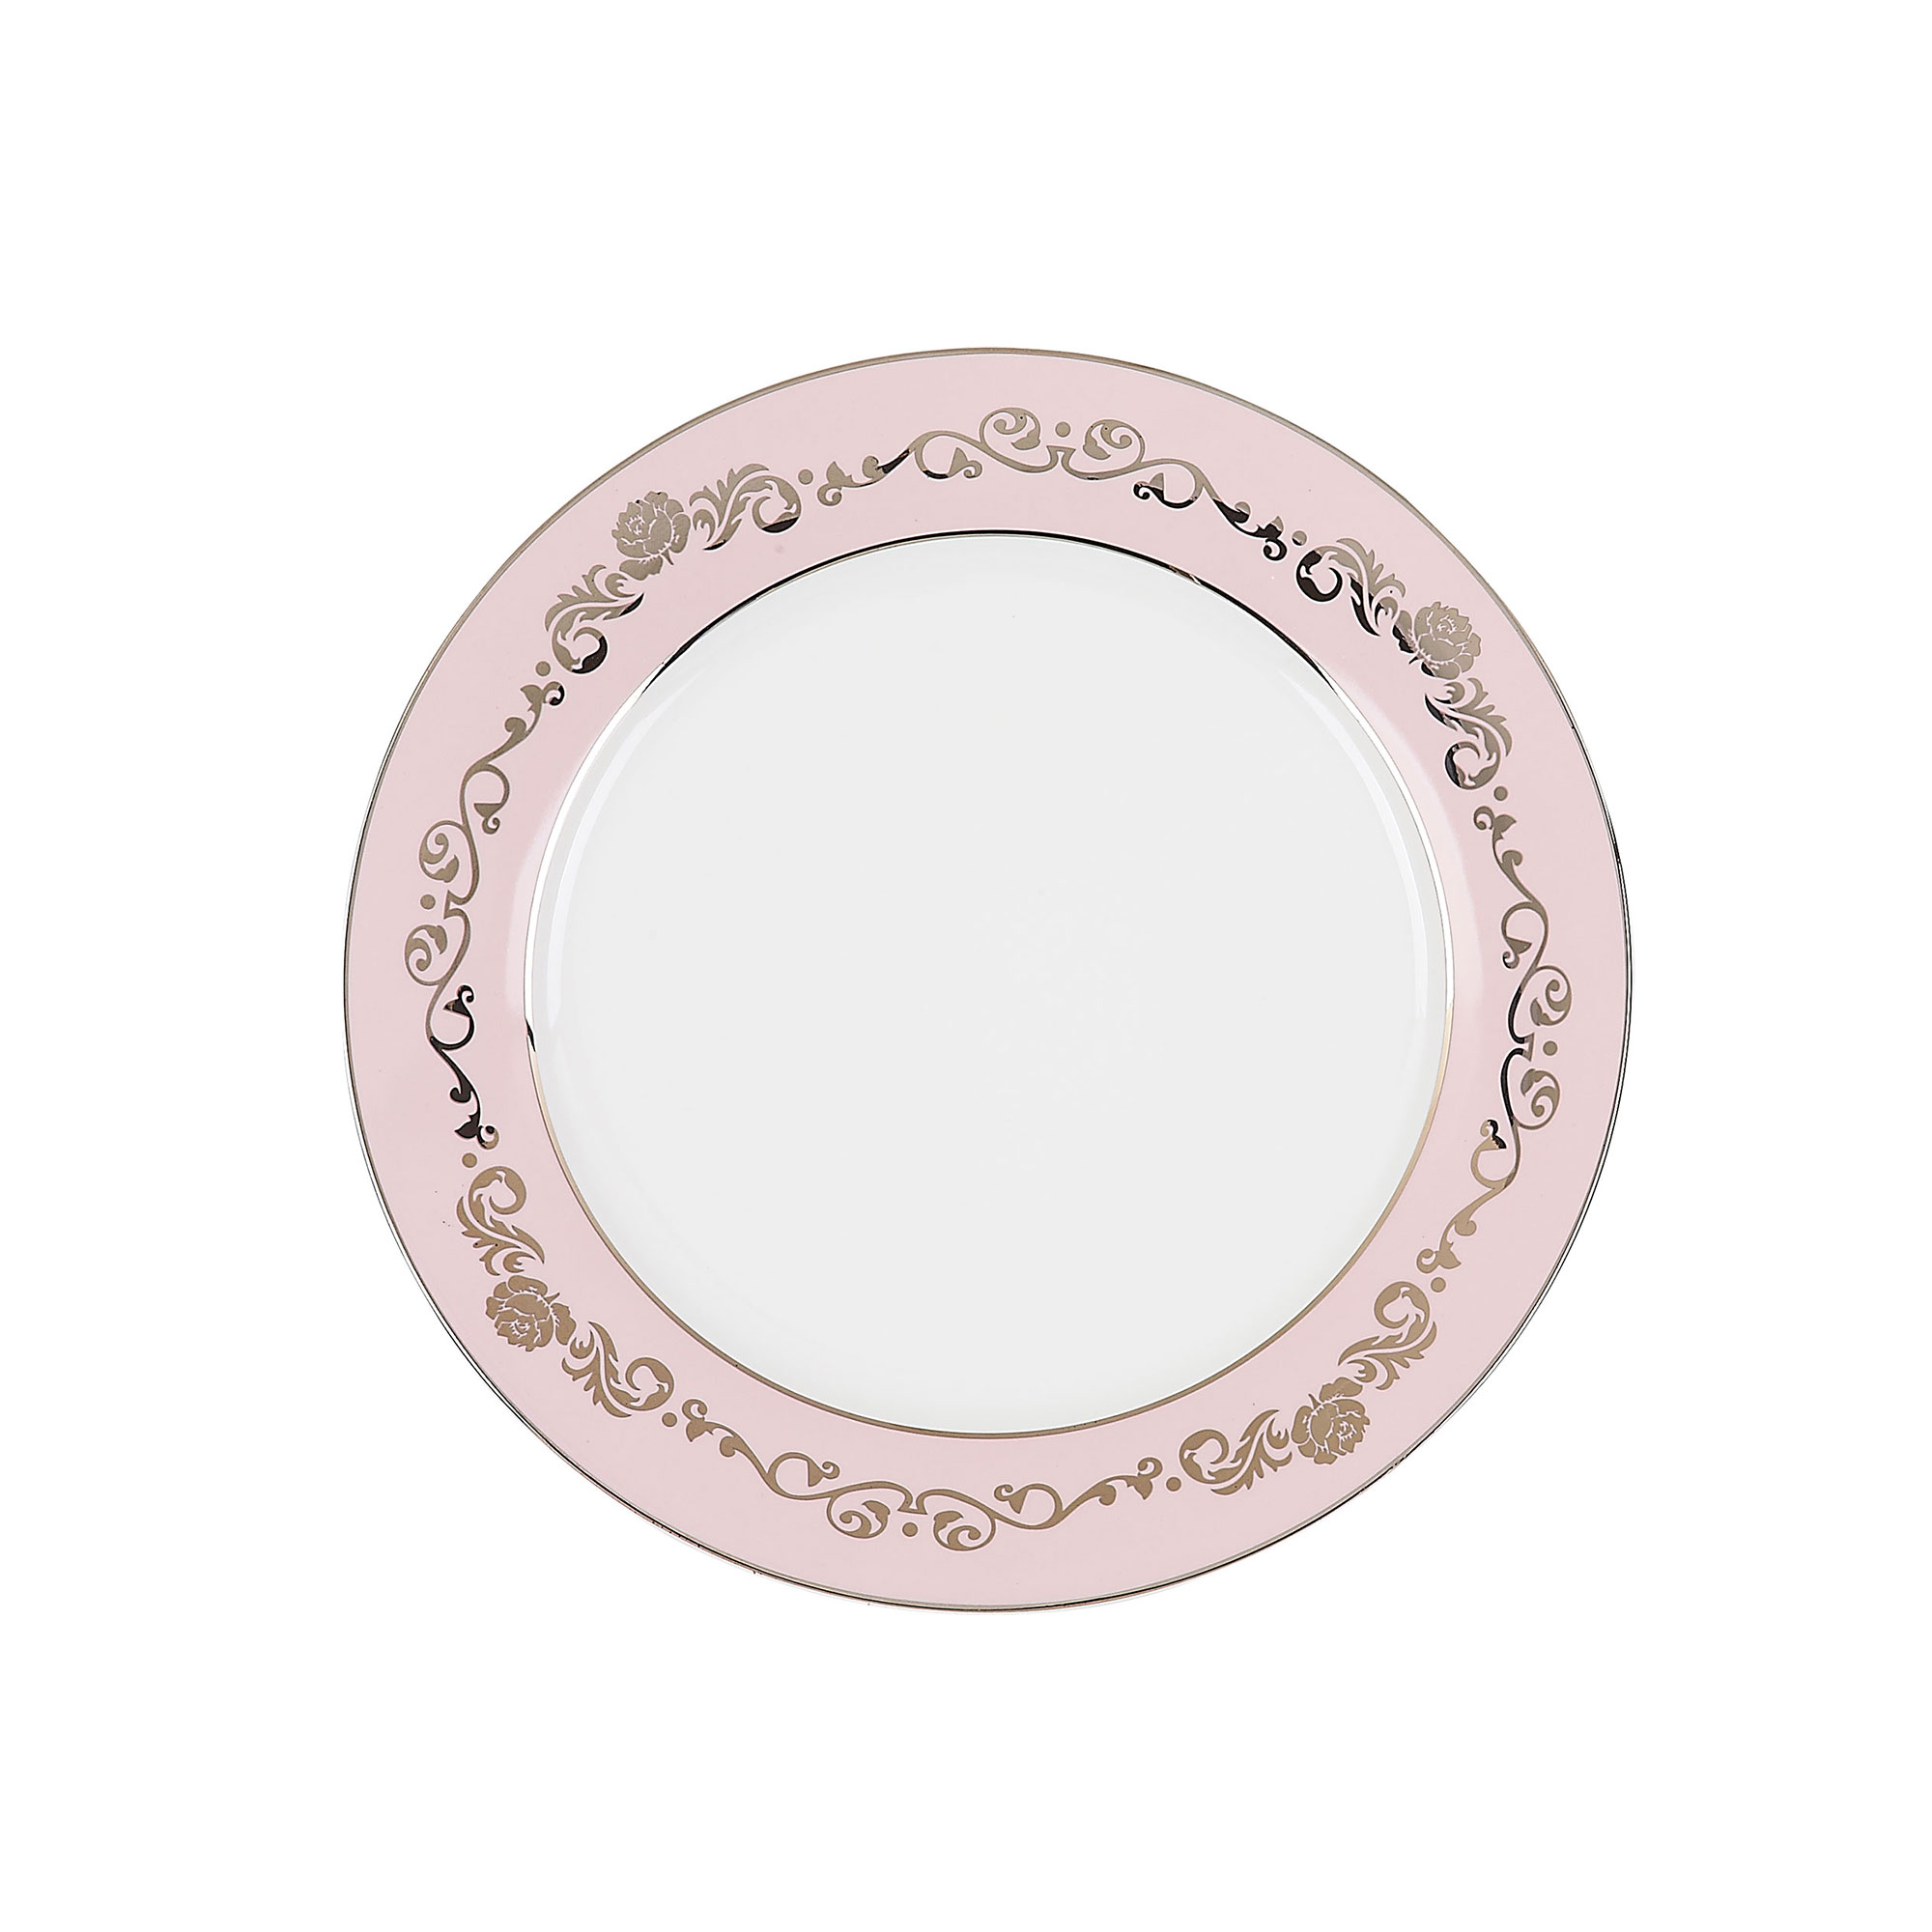 Related Products  sc 1 th 225 : pink dinner plate - pezcame.com